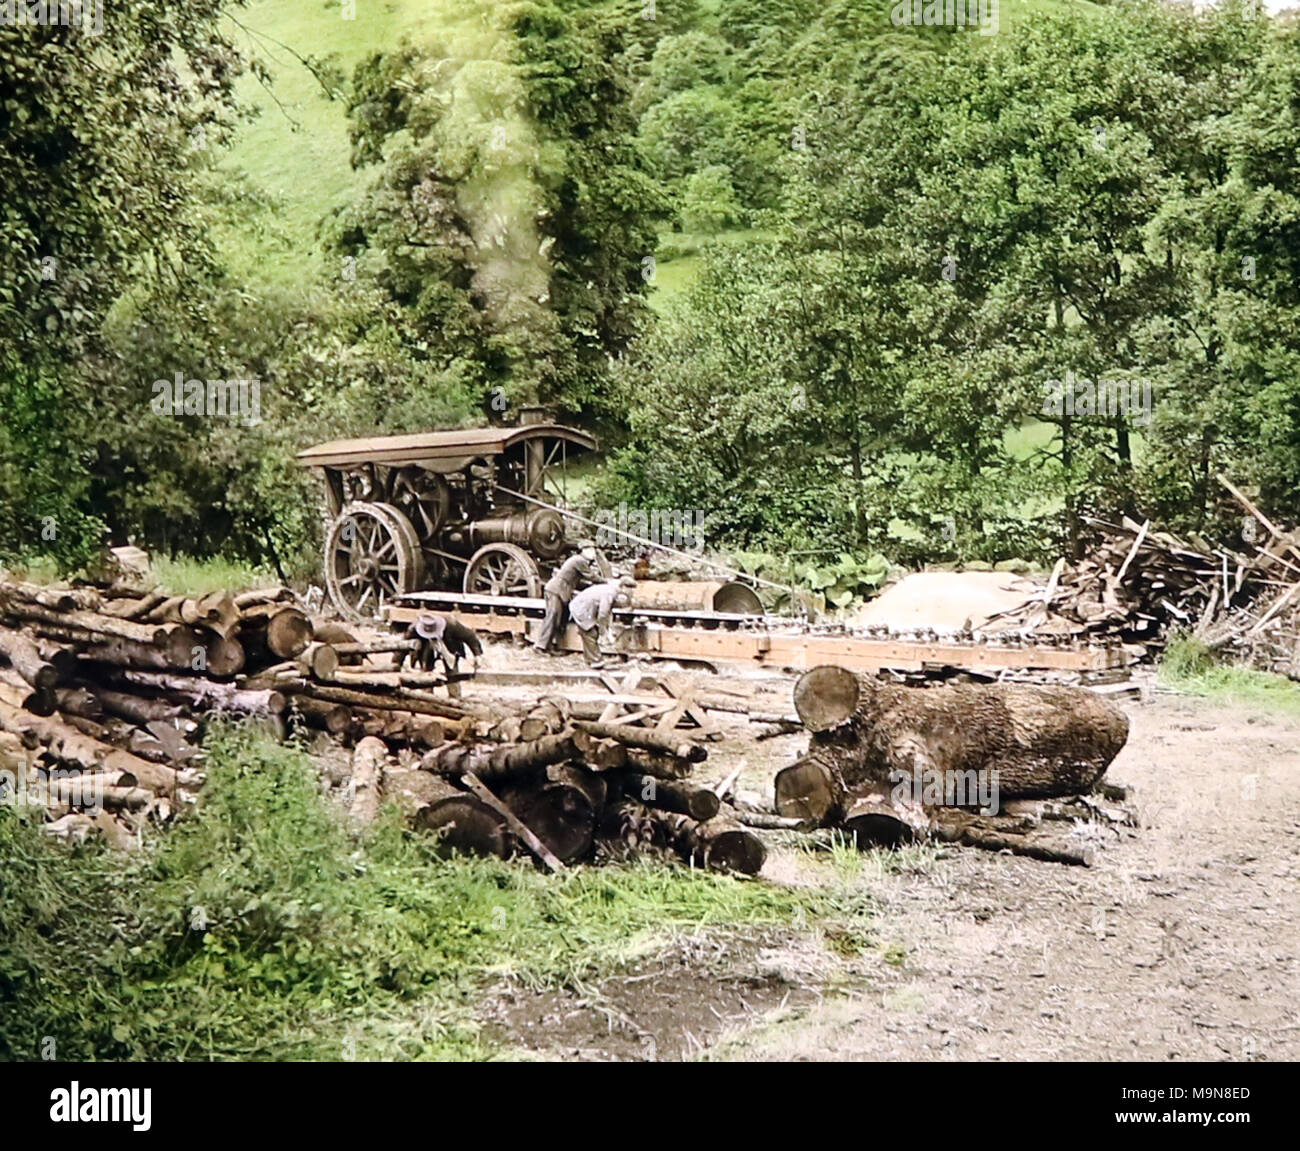 A sawmill powered by traction engine, early 1900s, hand coloured photo - Stock Image